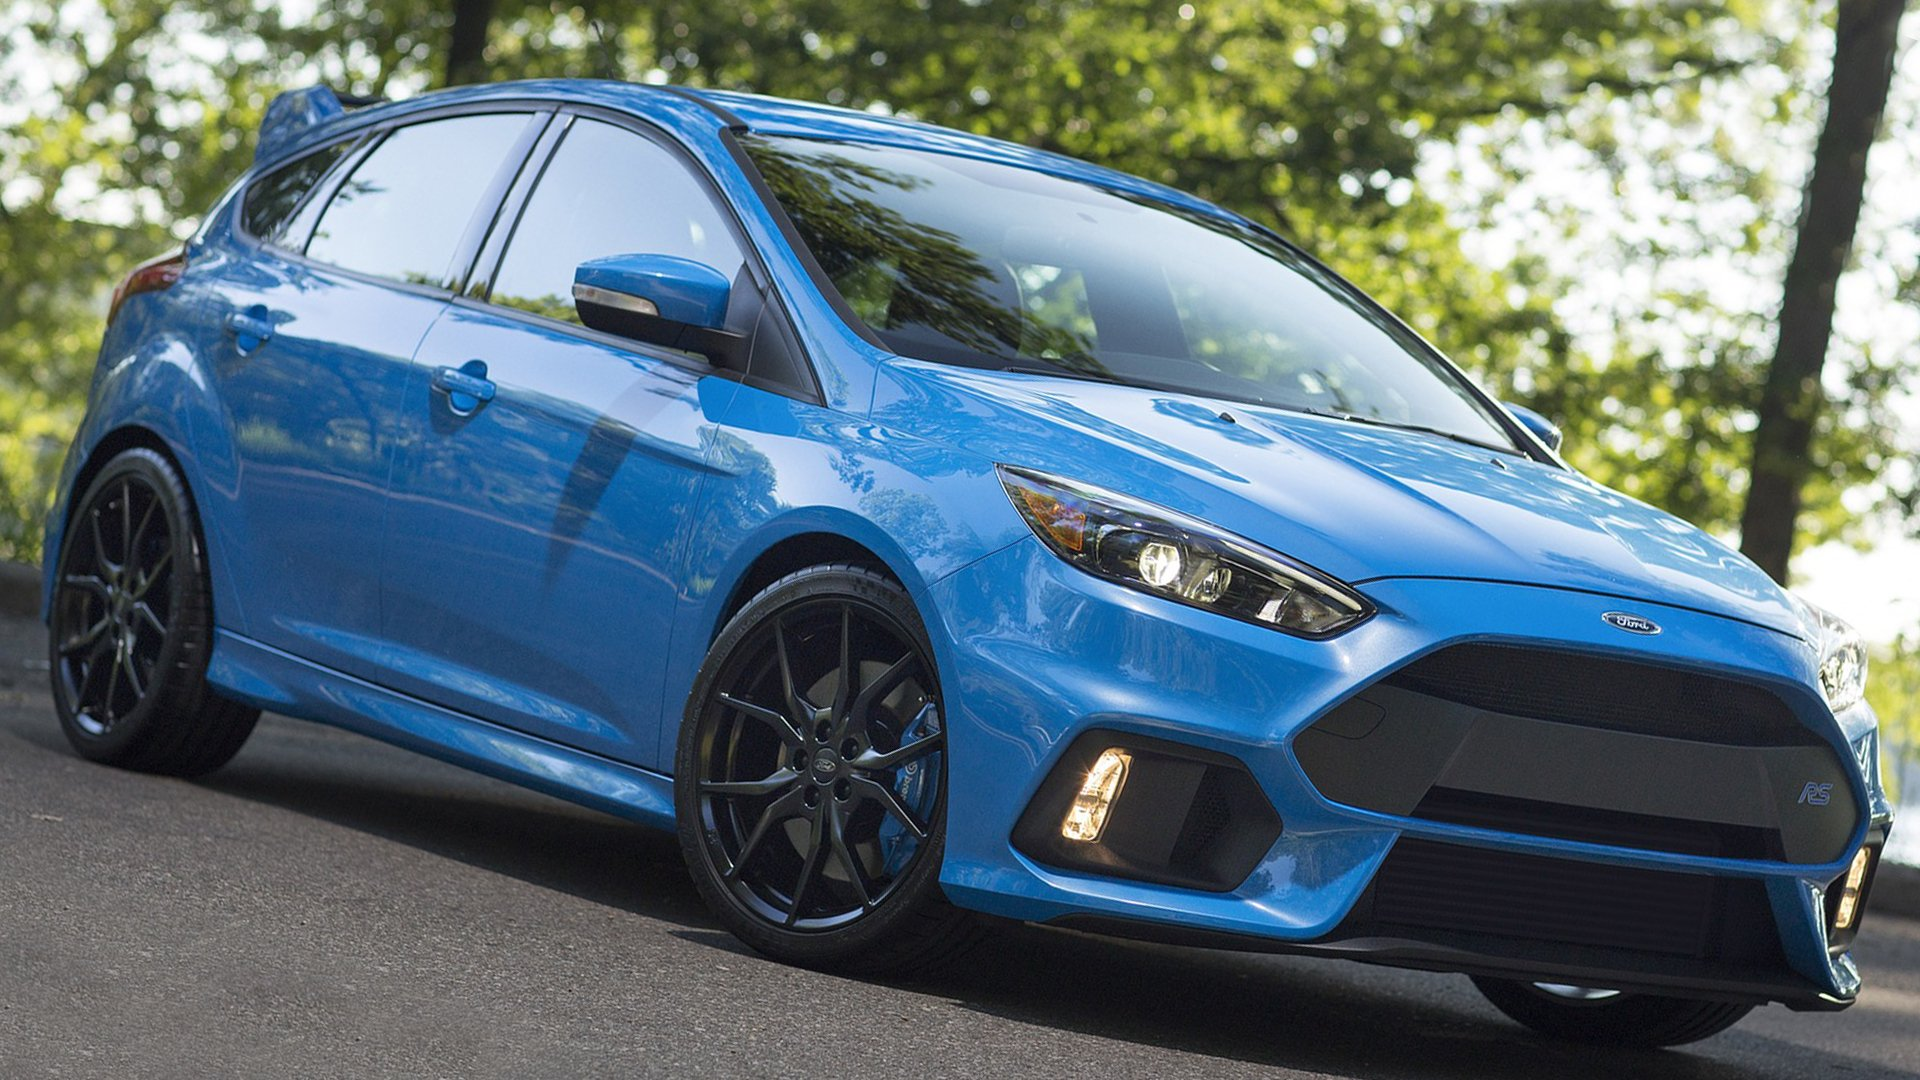 Rumors News Ford Focus HD